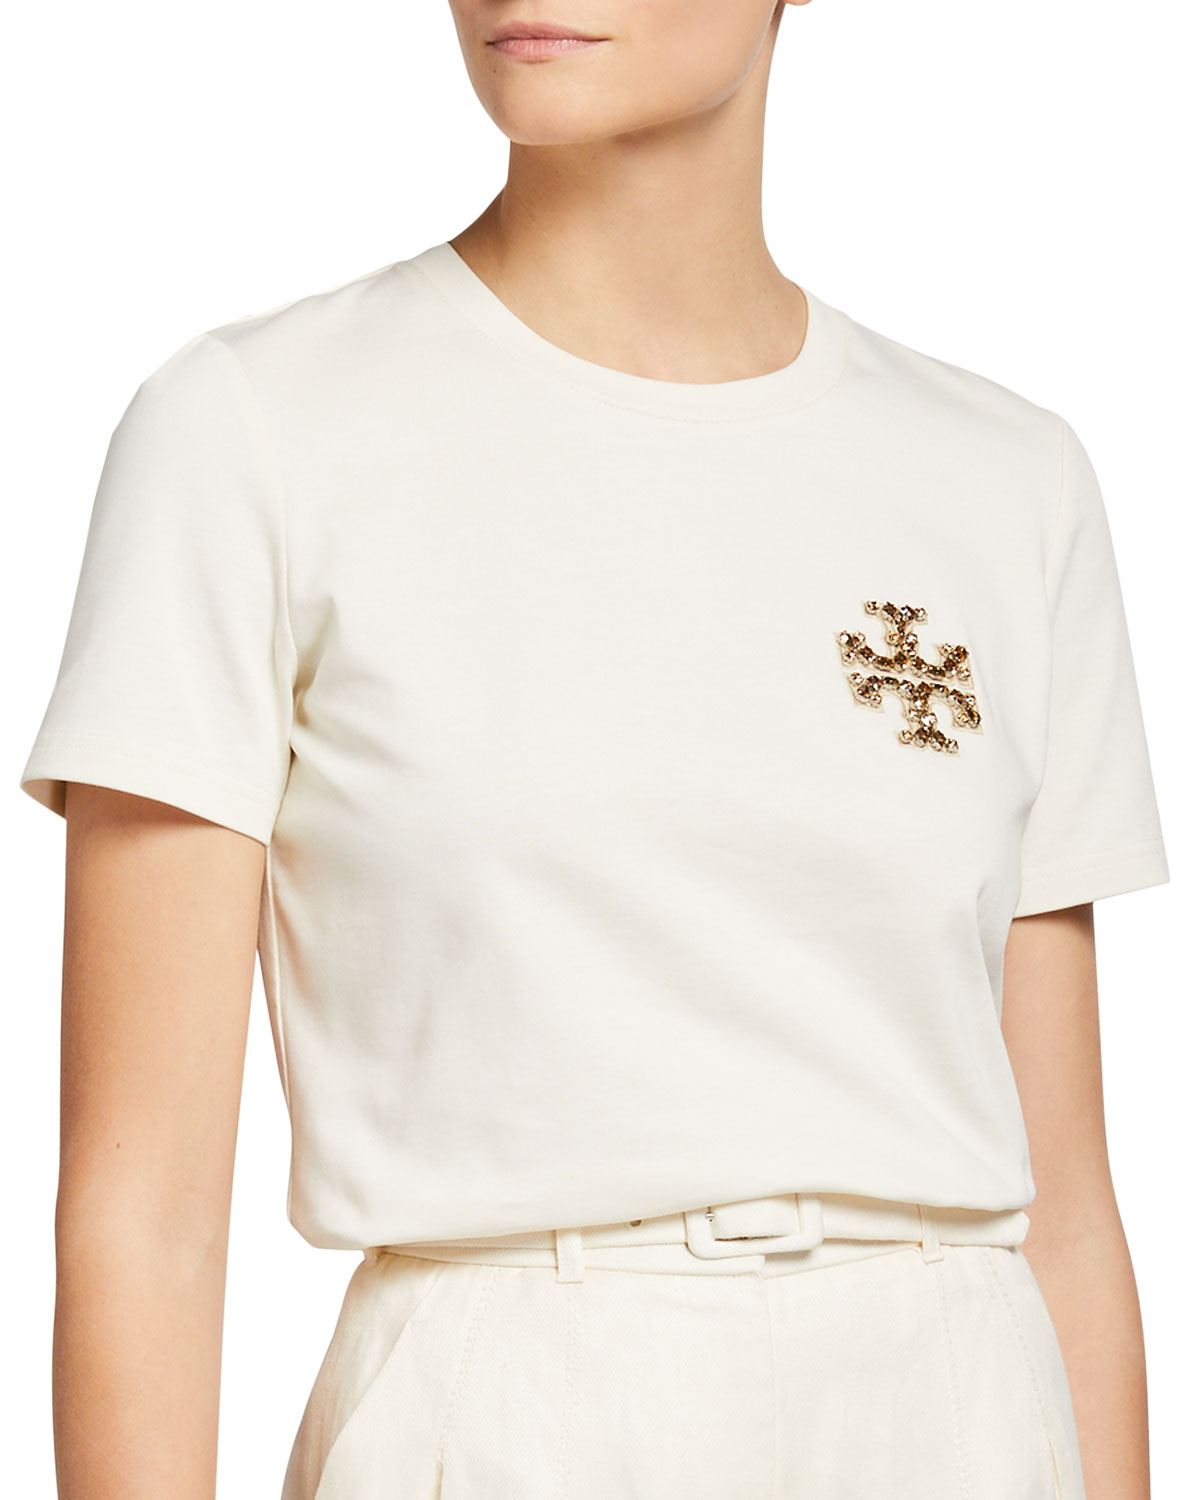 Tory Burch BEJEWELED LOGO COTTON T-SHIRT